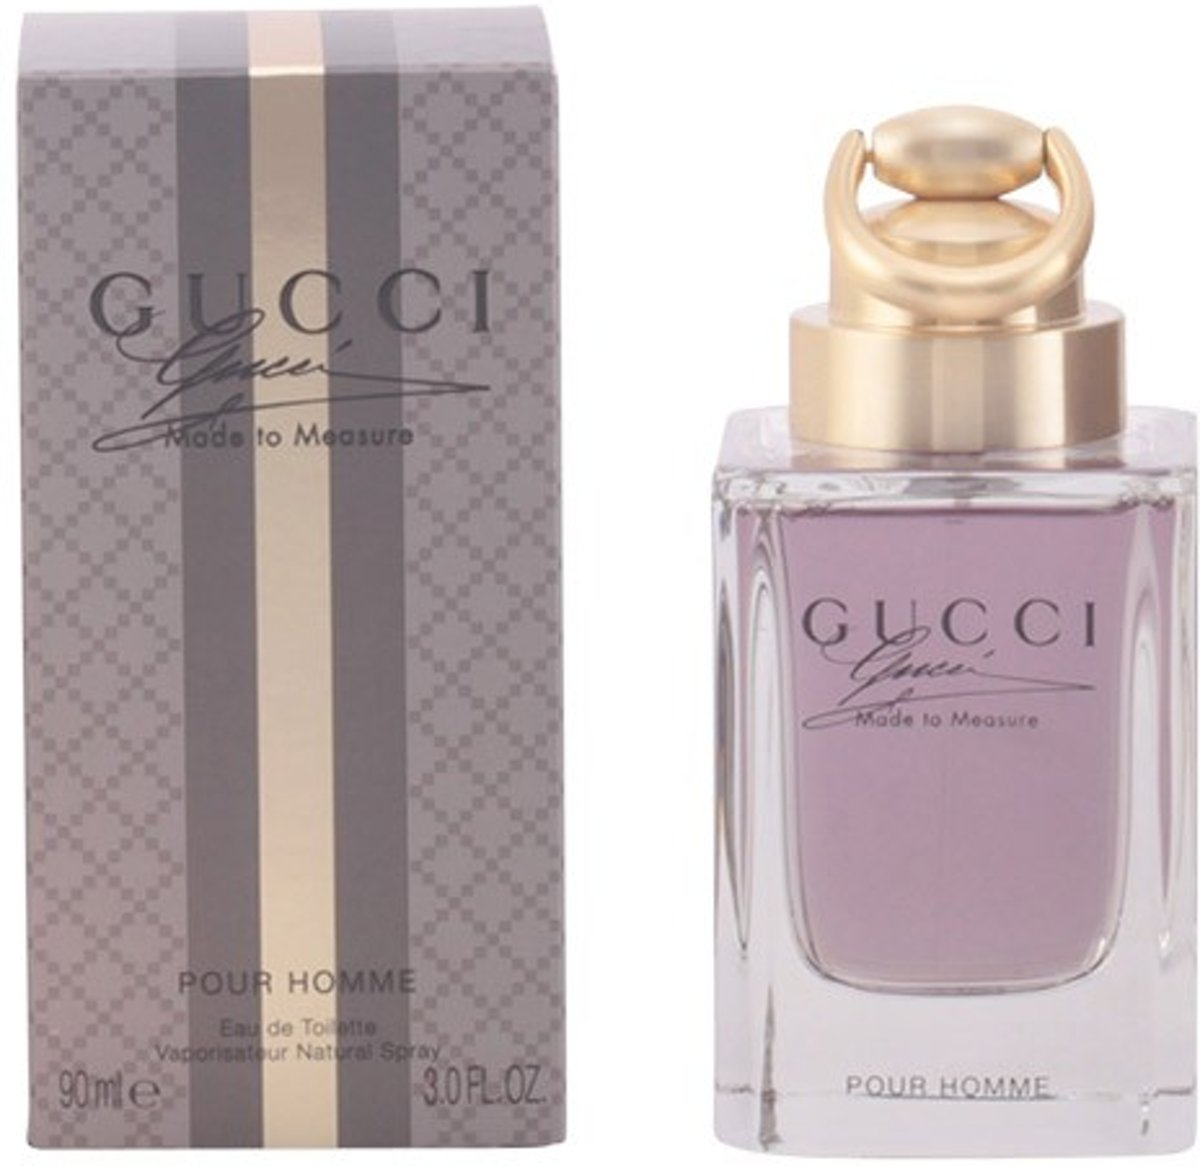 MULTI BUNDEL 2 stuks GUCCI MADE TO MEASURE POUR HOMME Eau de Toilette Spray 90 ml